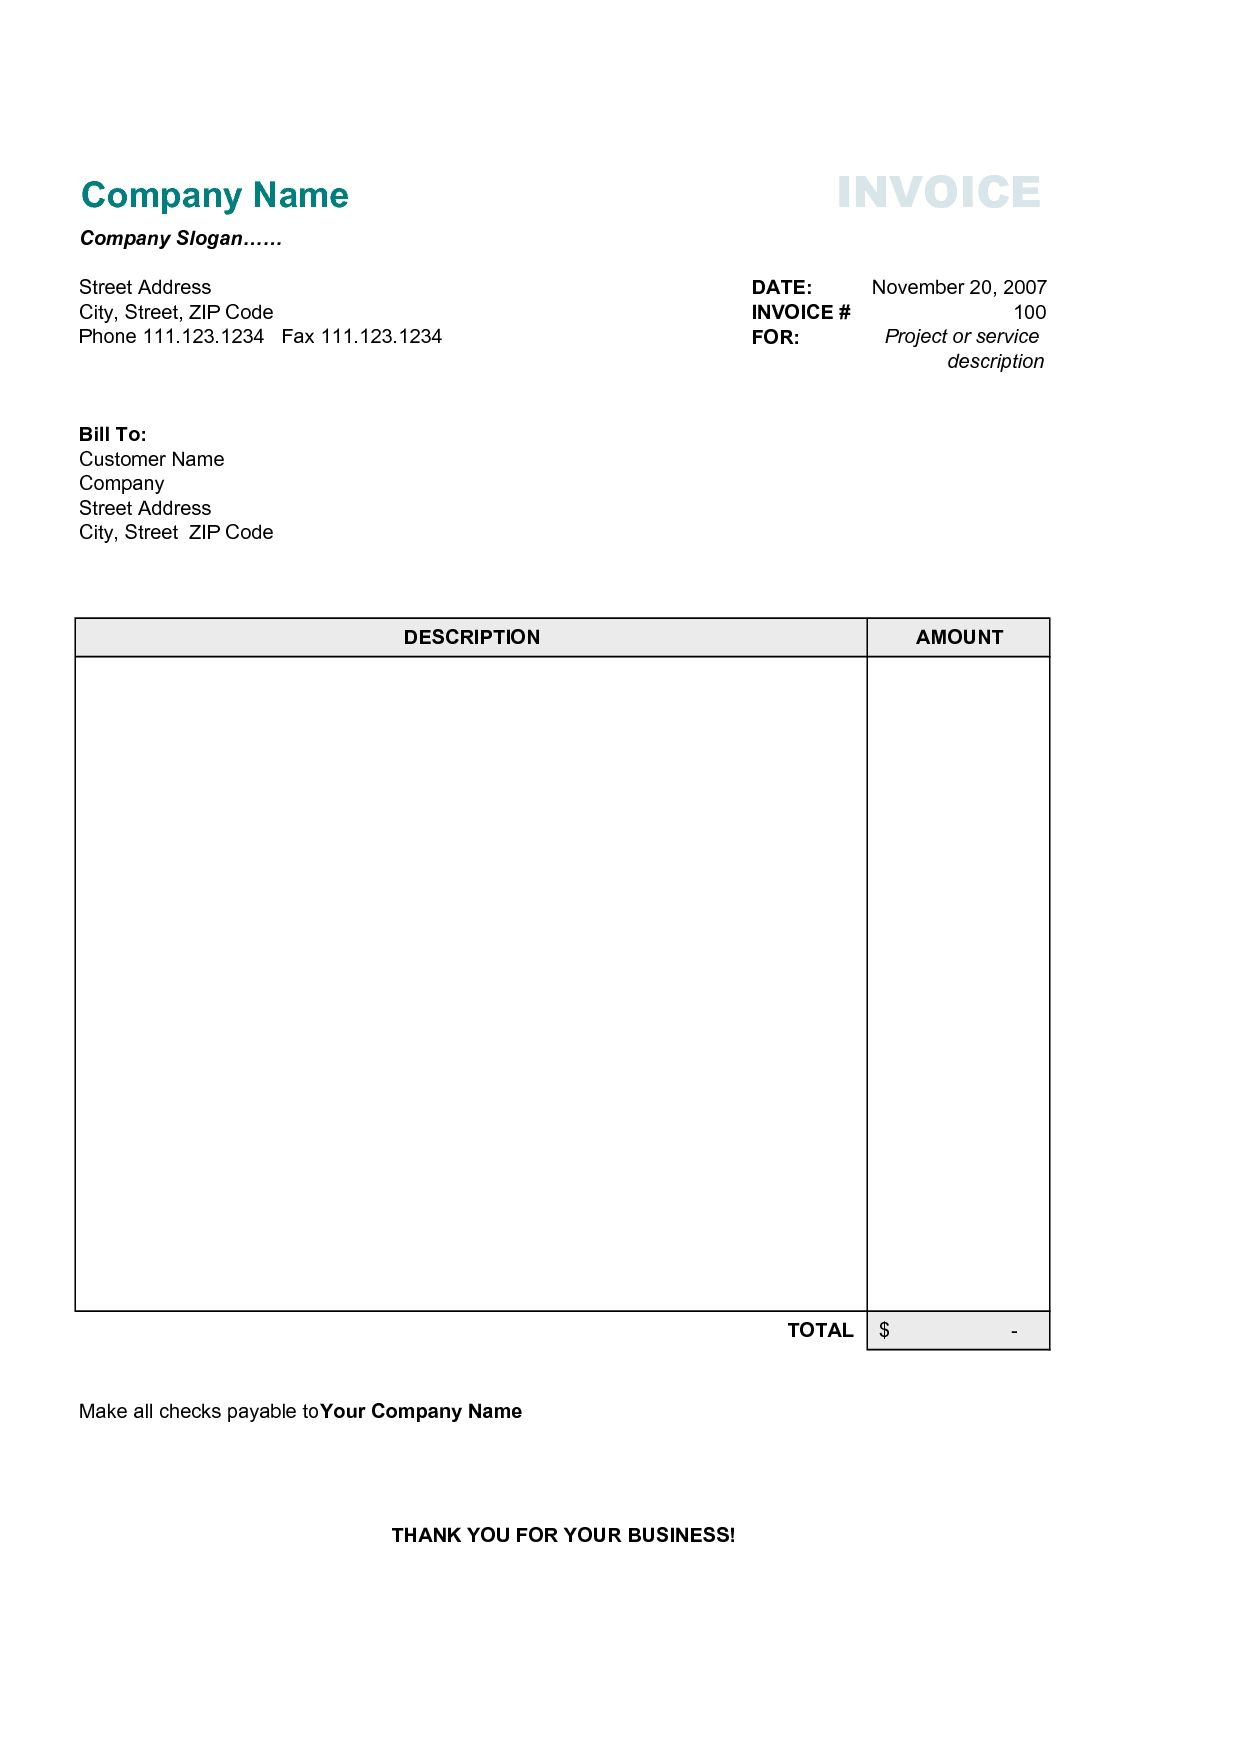 Best Photos Of Printable Commercial Invoice Sample Business - Free printable invoice templates for service business